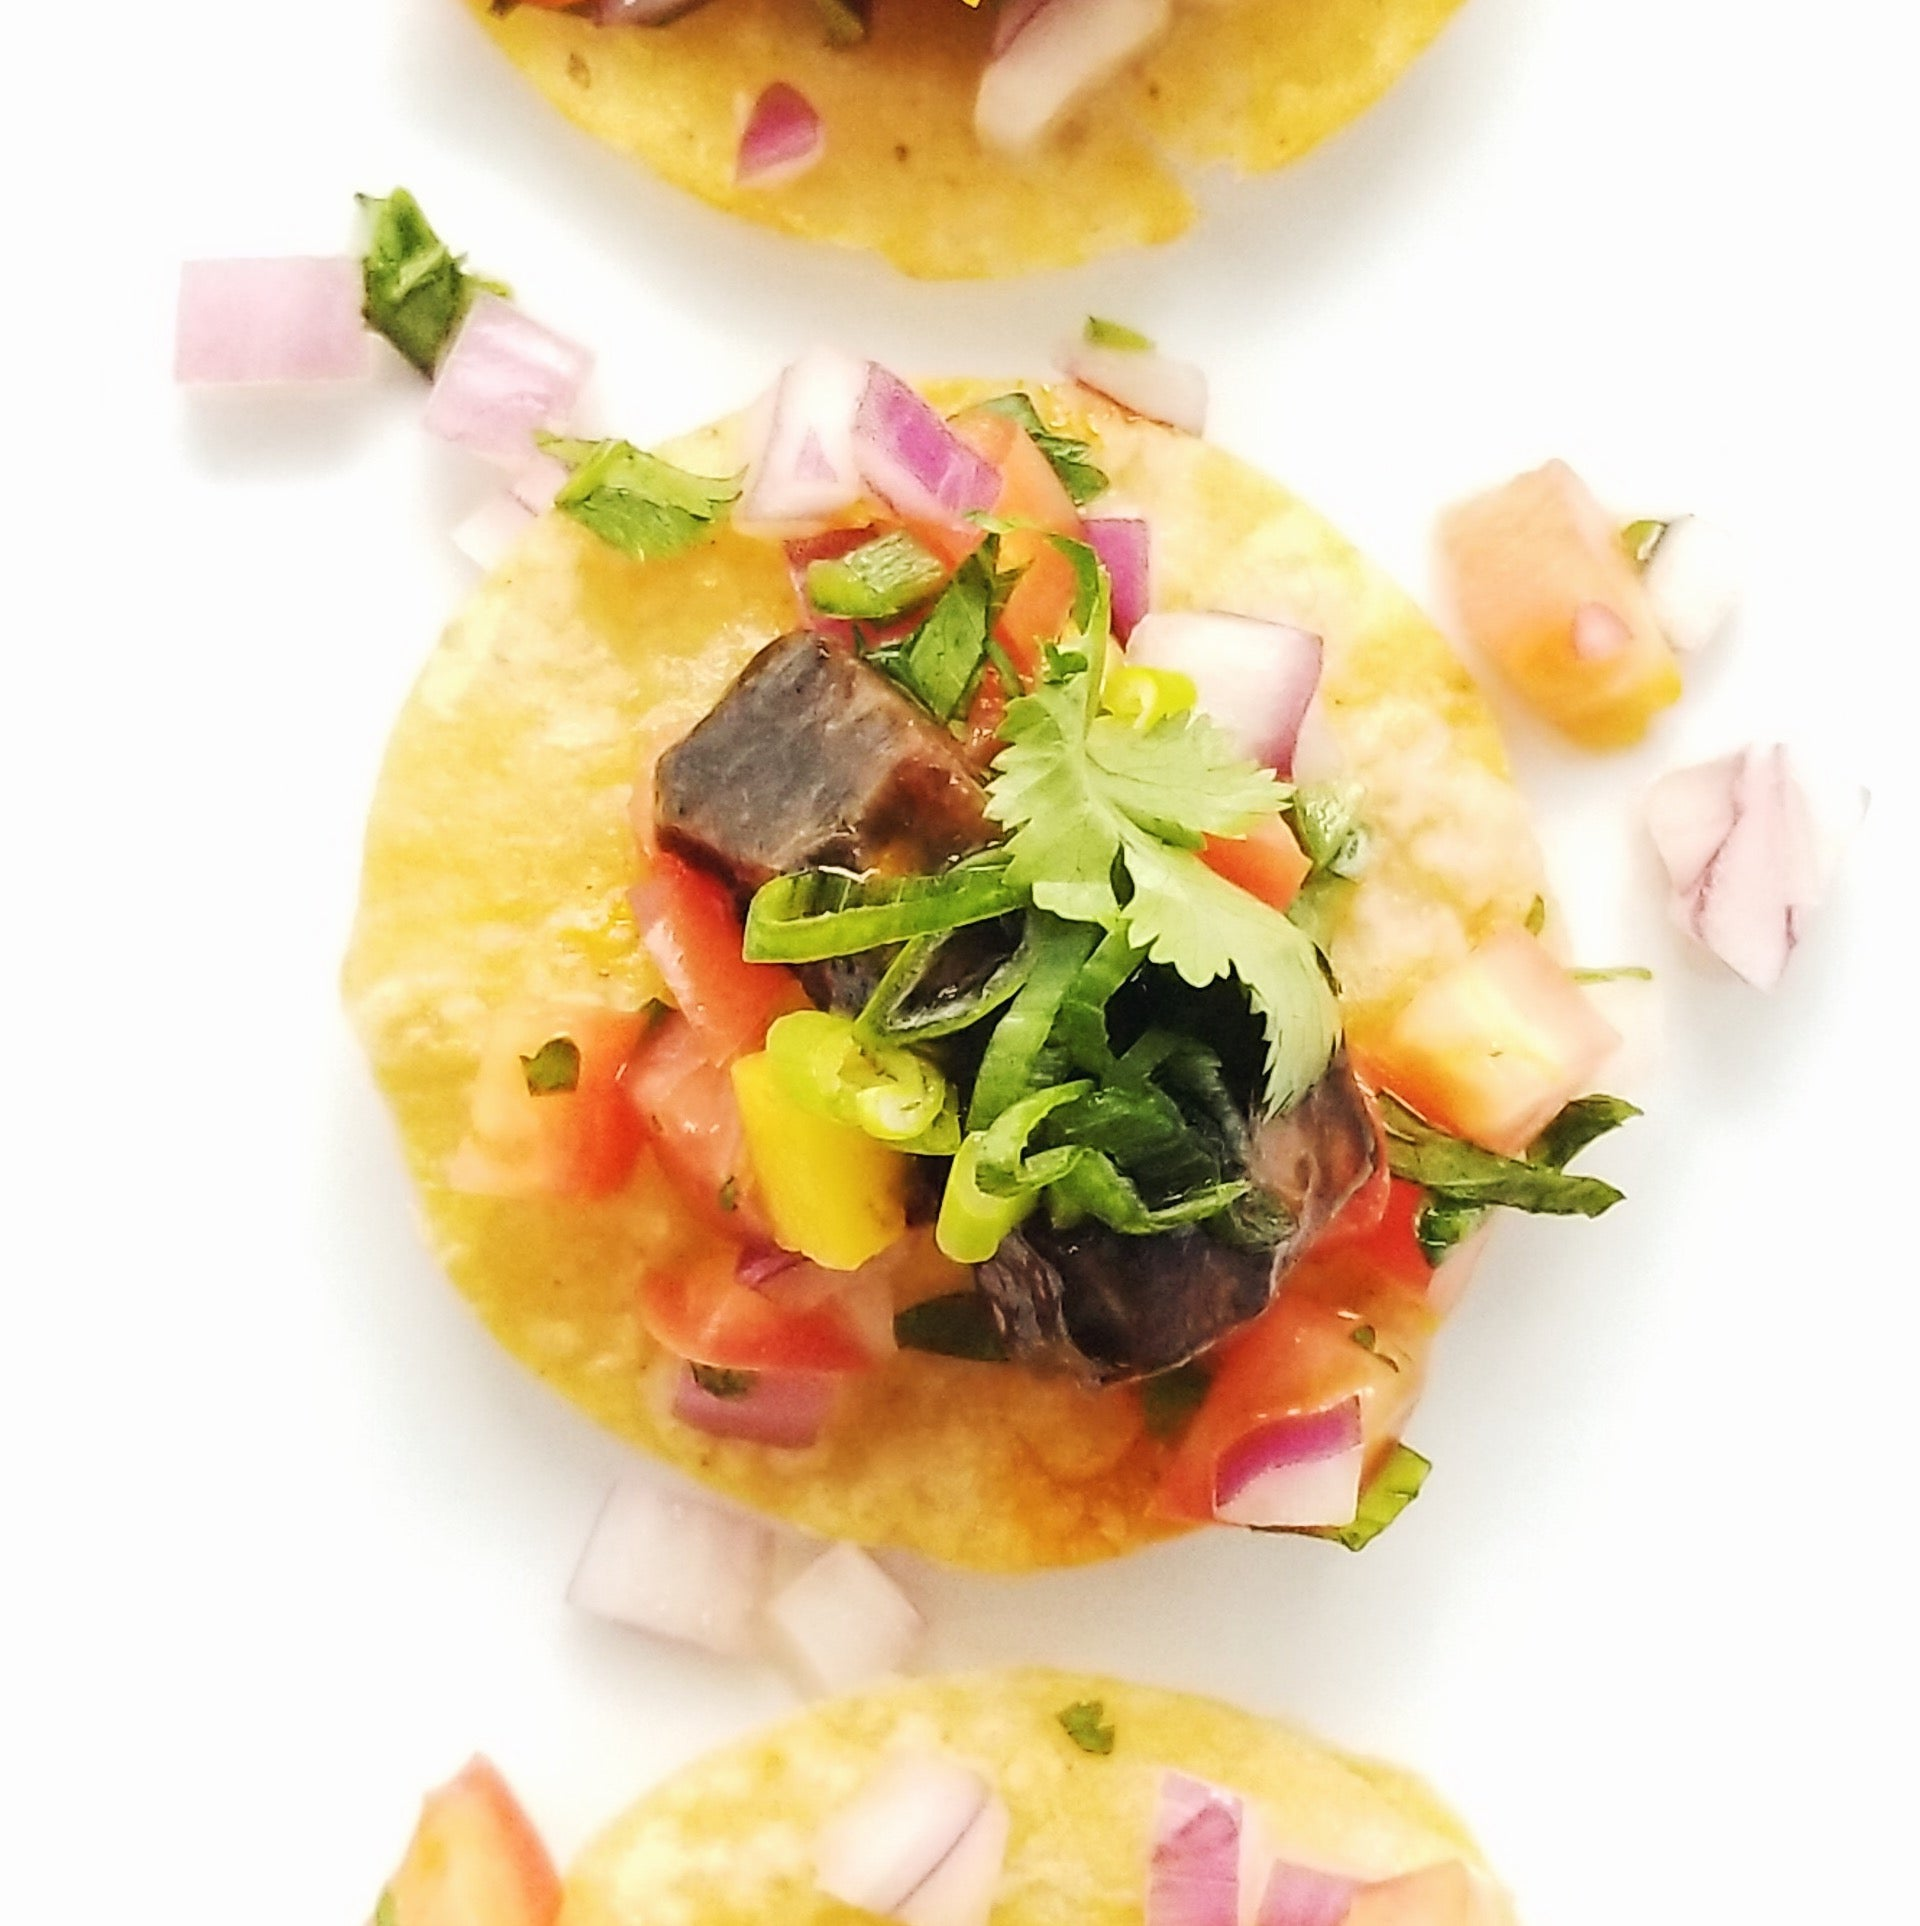 Chef Andy Suarez: Tostadas de Calamares en Tinta (Squid in Ink)